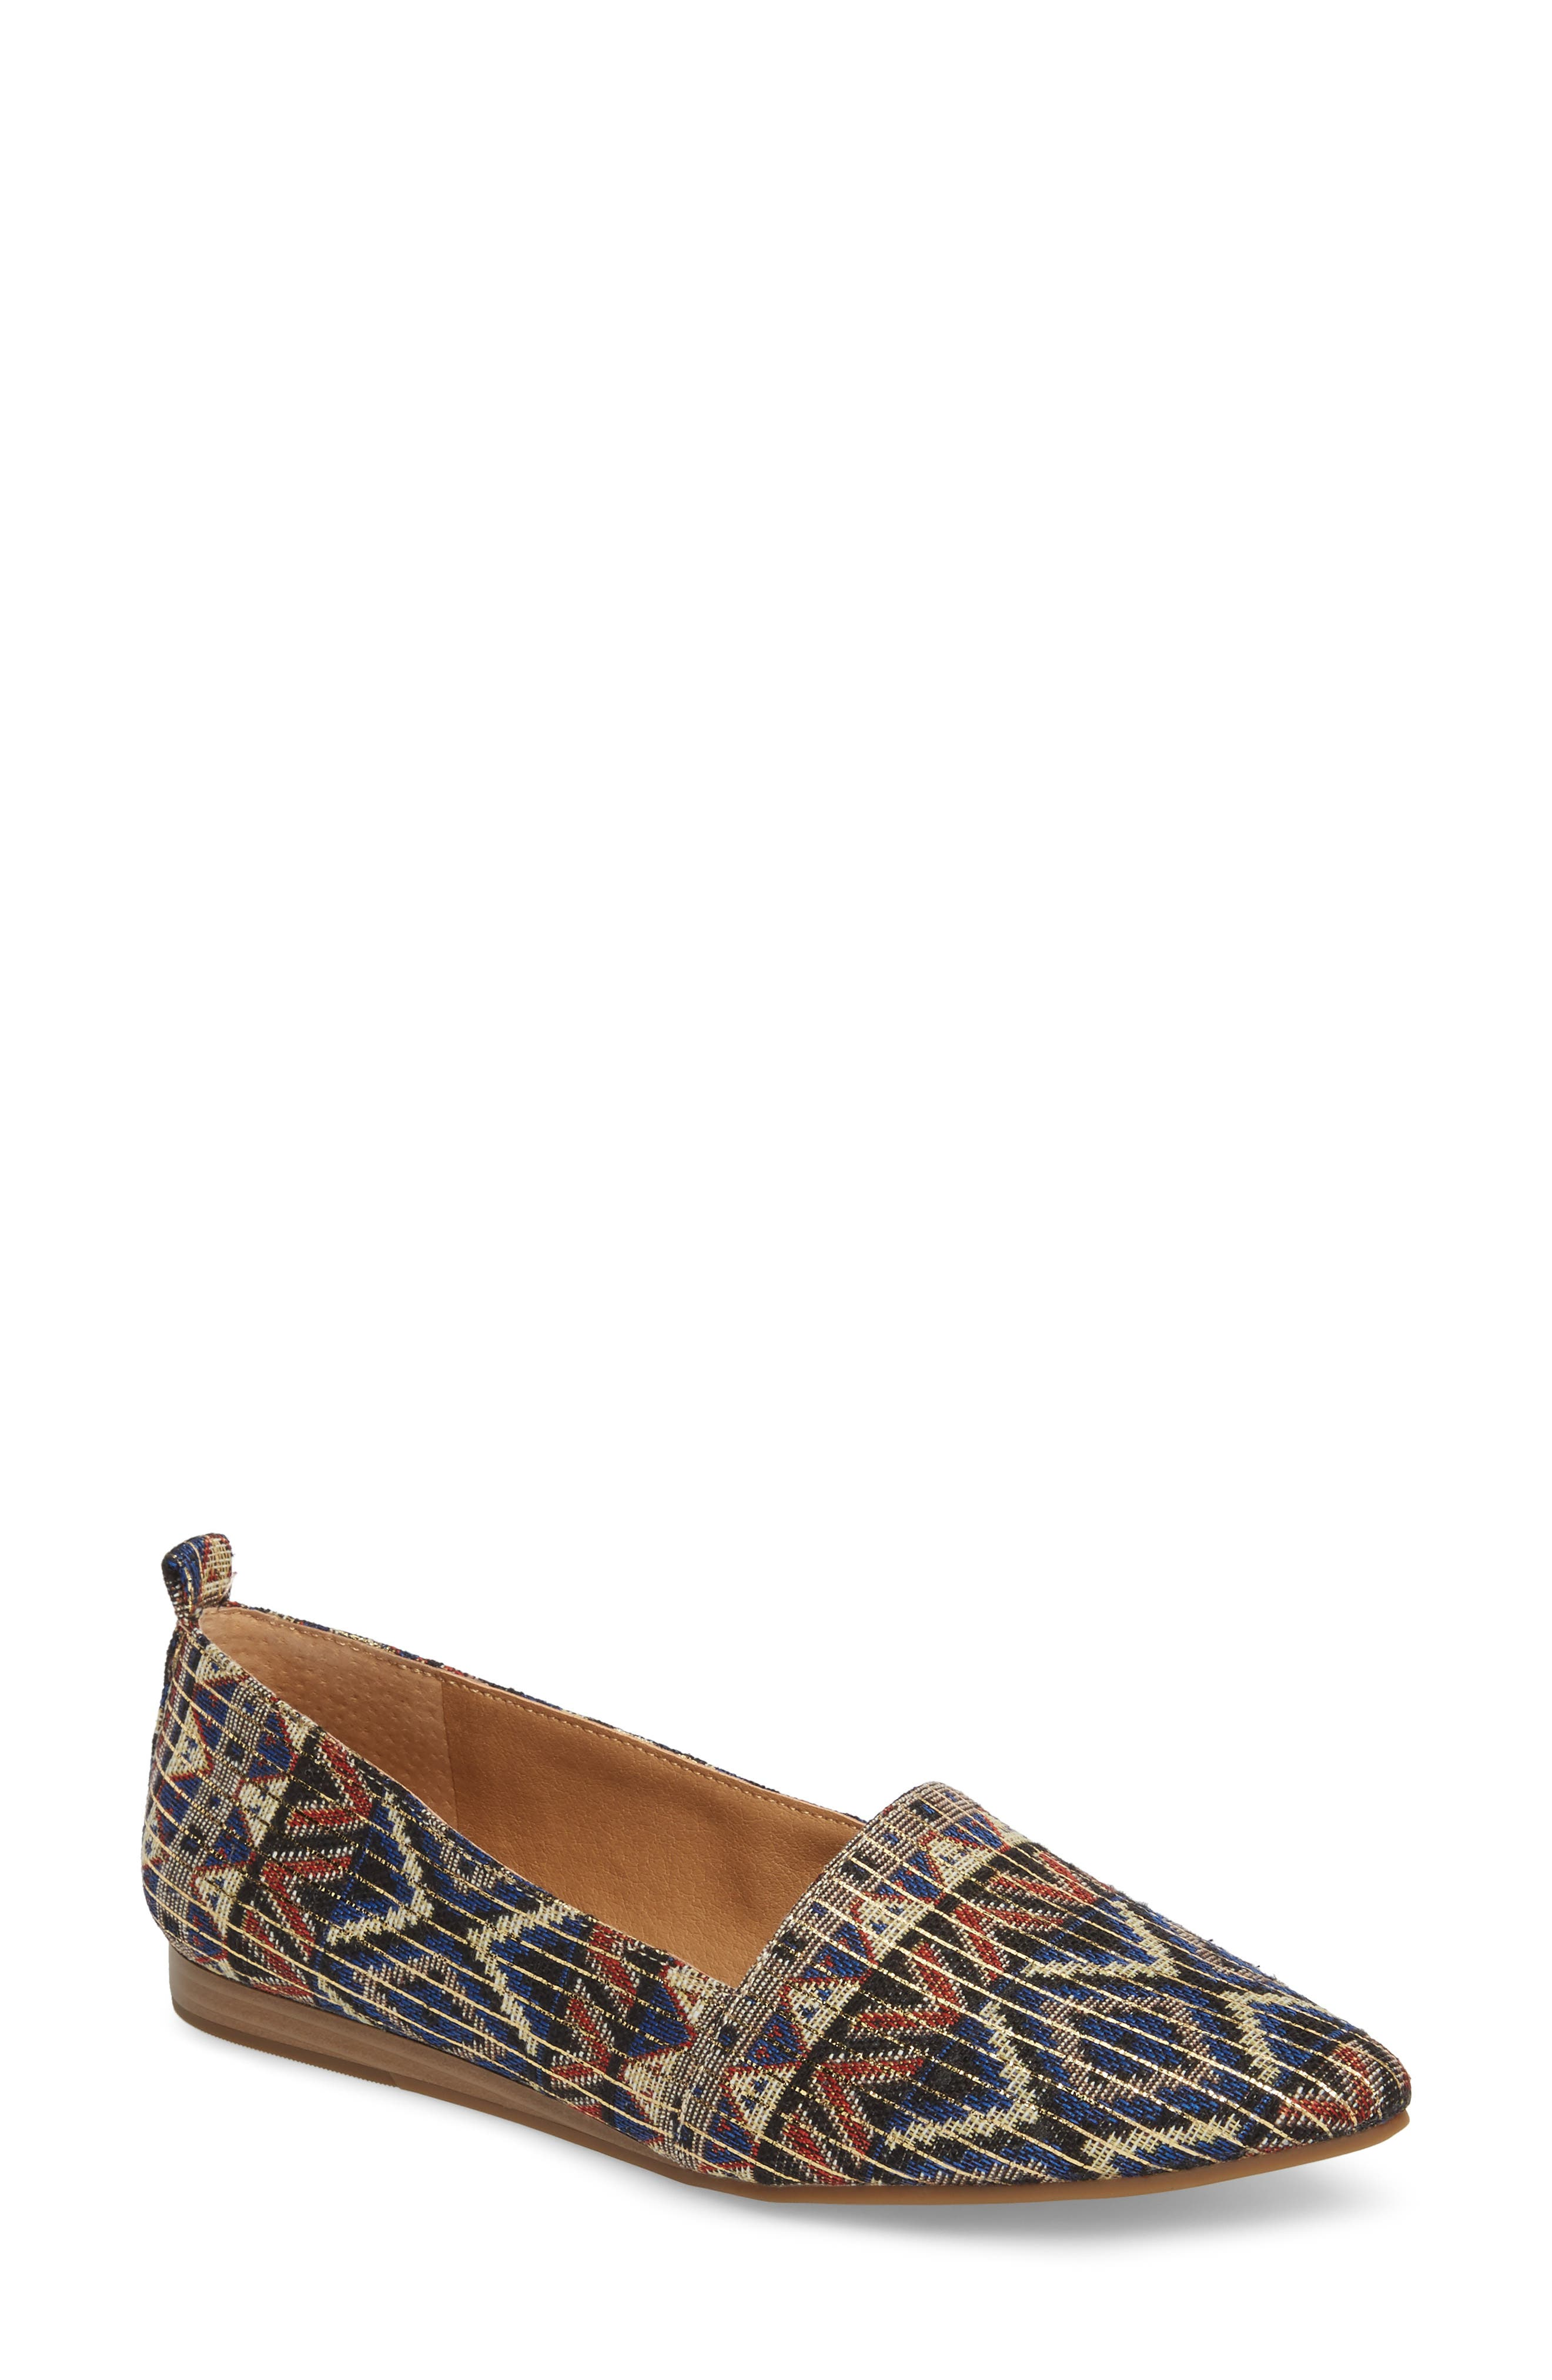 Beechmer Pointy Toe Flat,                             Main thumbnail 1, color,                             Picante Leather